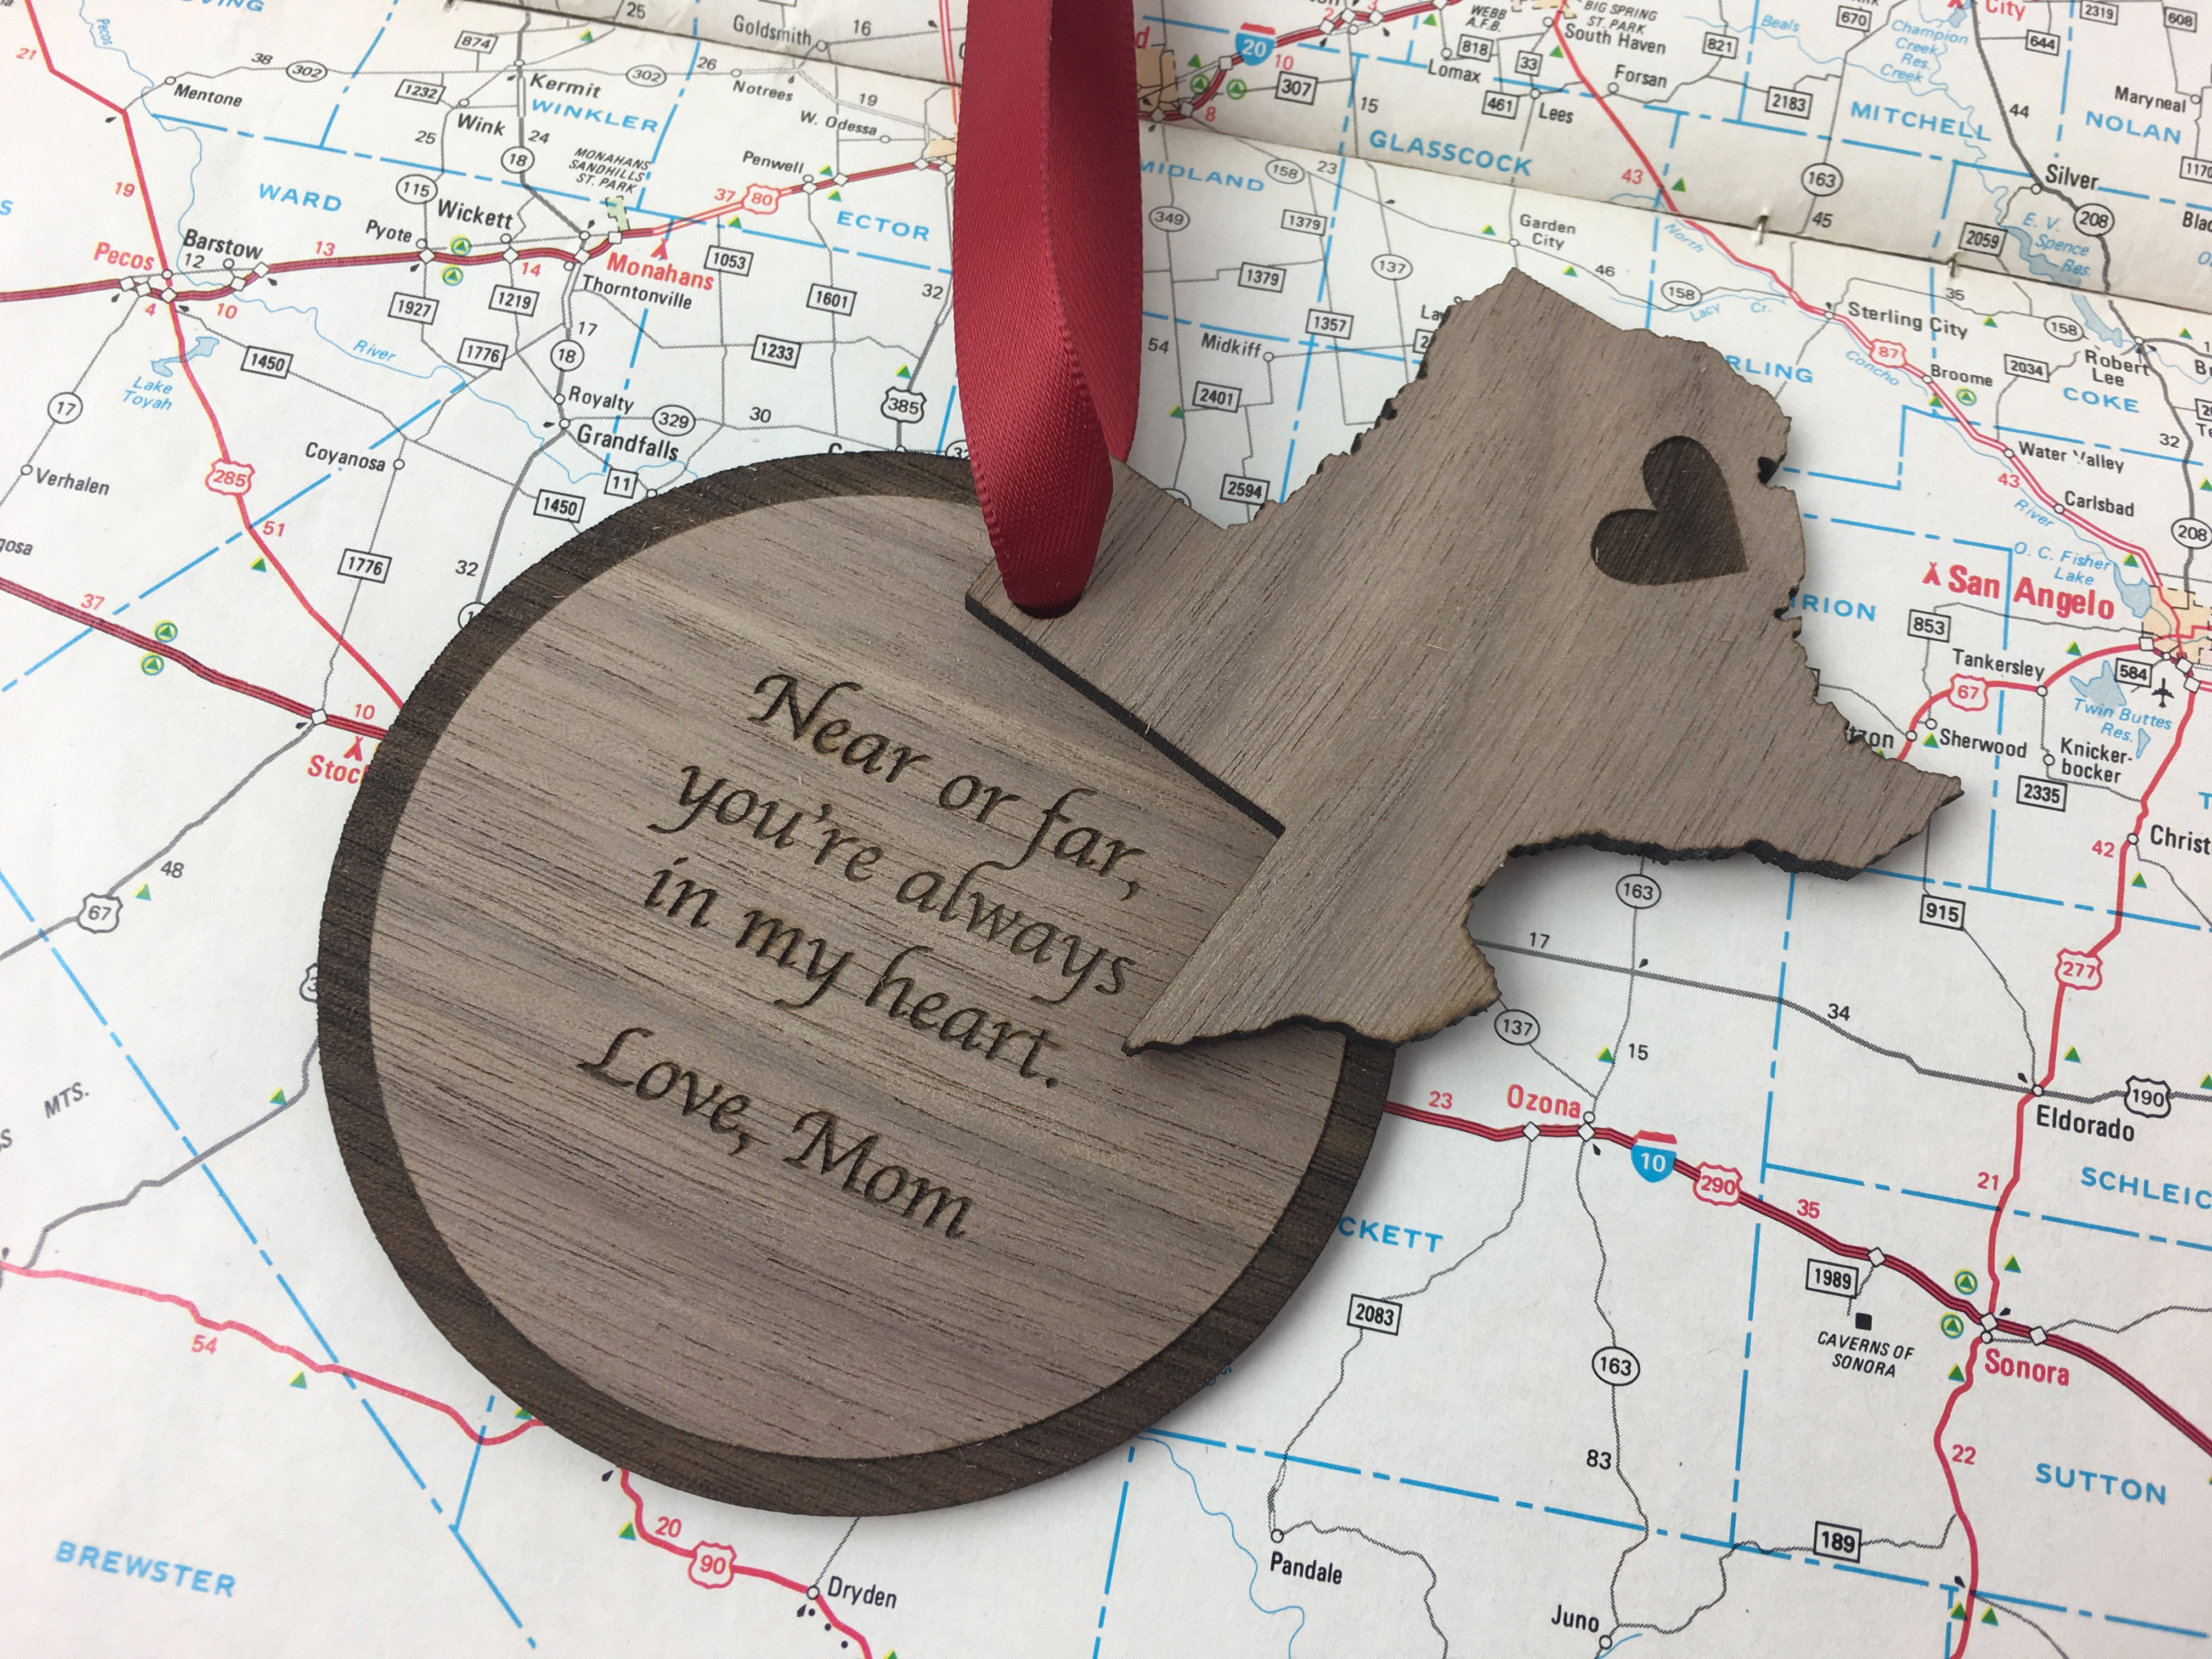 Near or Far, you're always in my heart holiday ornament